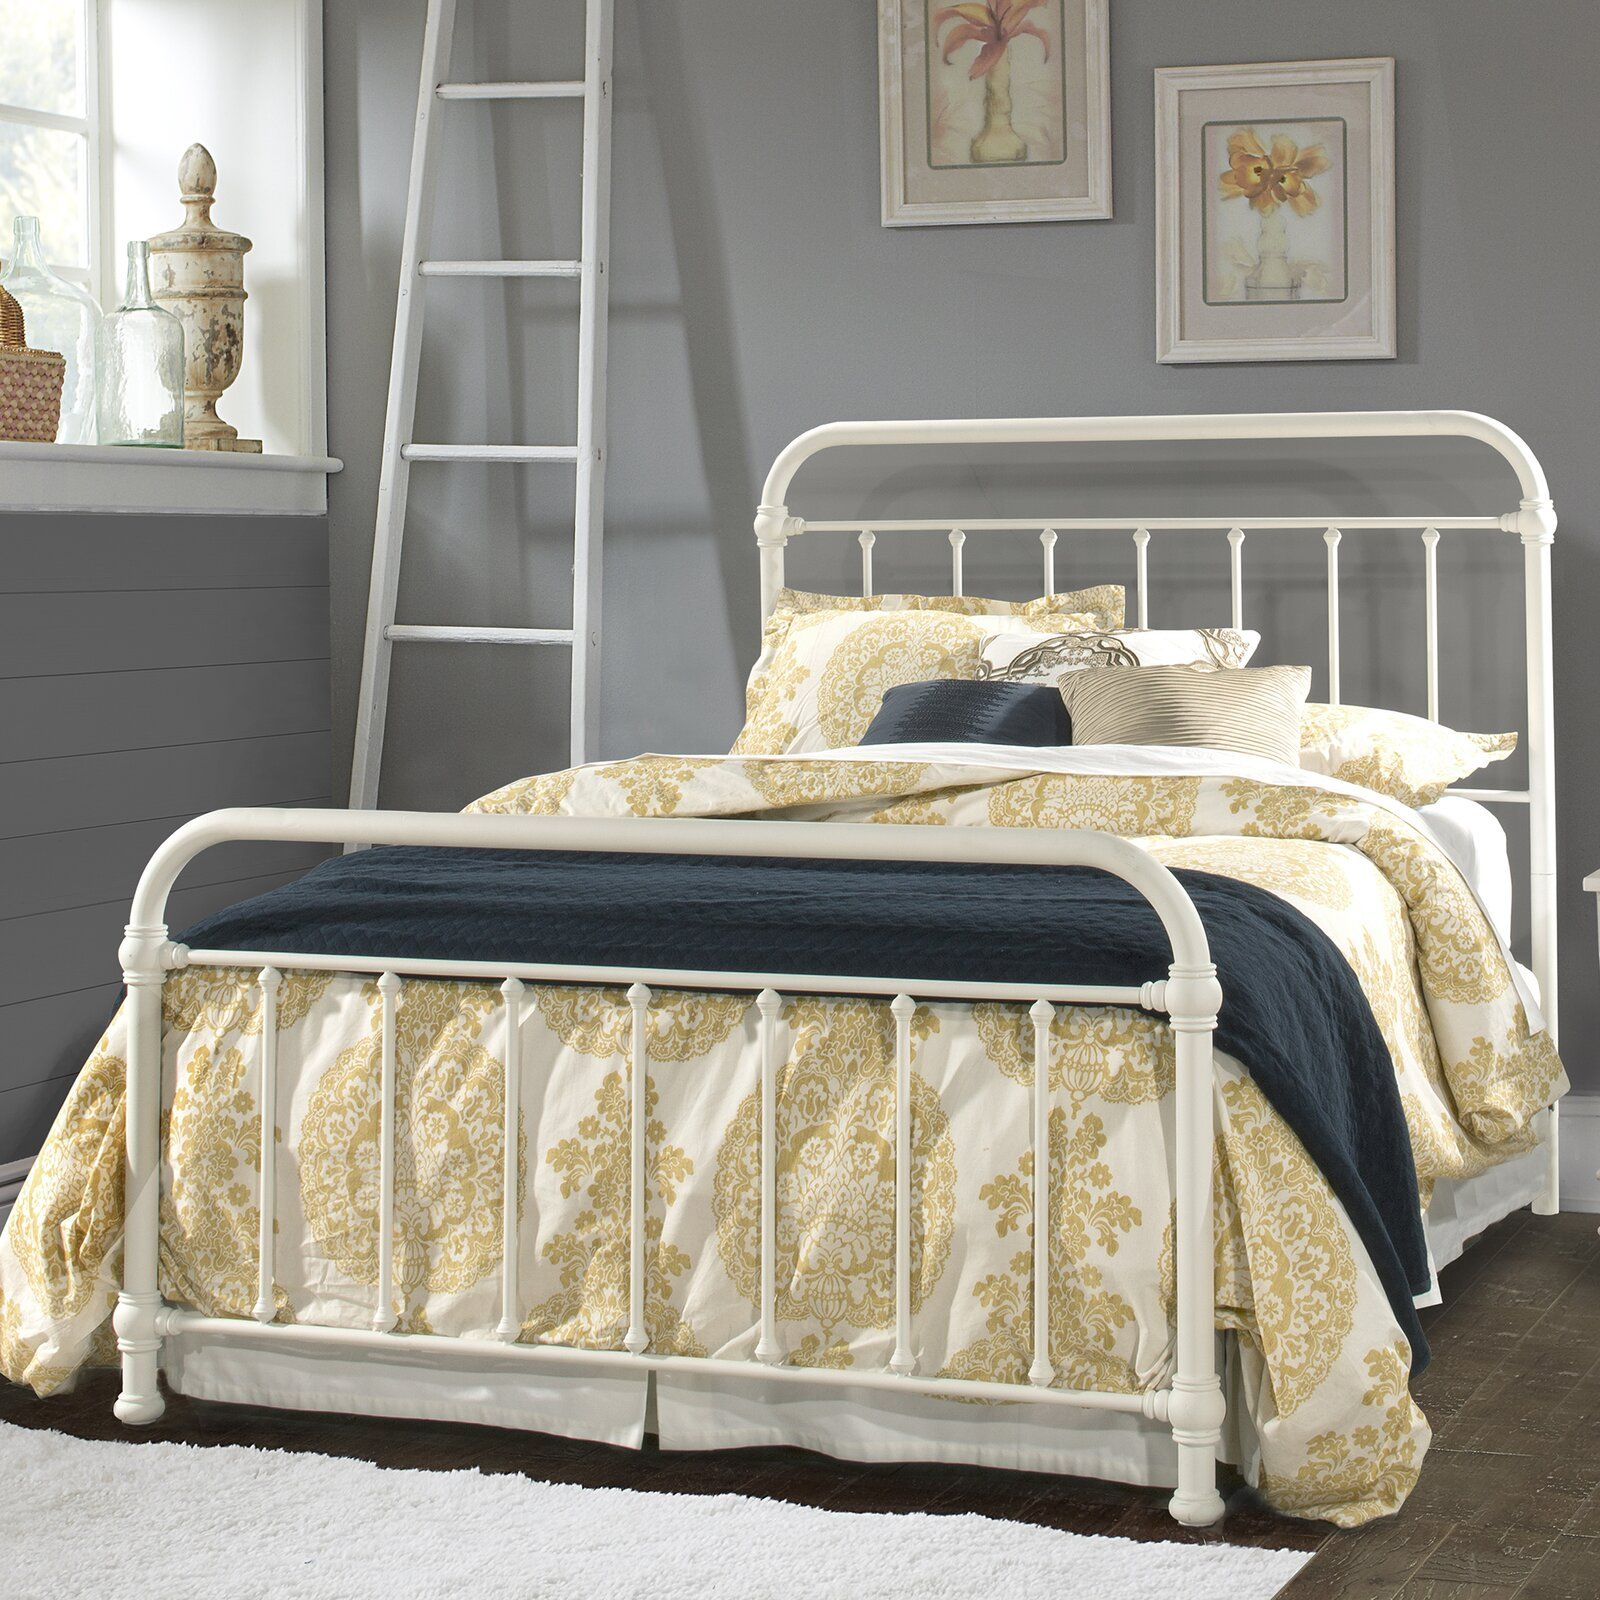 August Grove Ropesville Standard Bed Hillsdale furniture